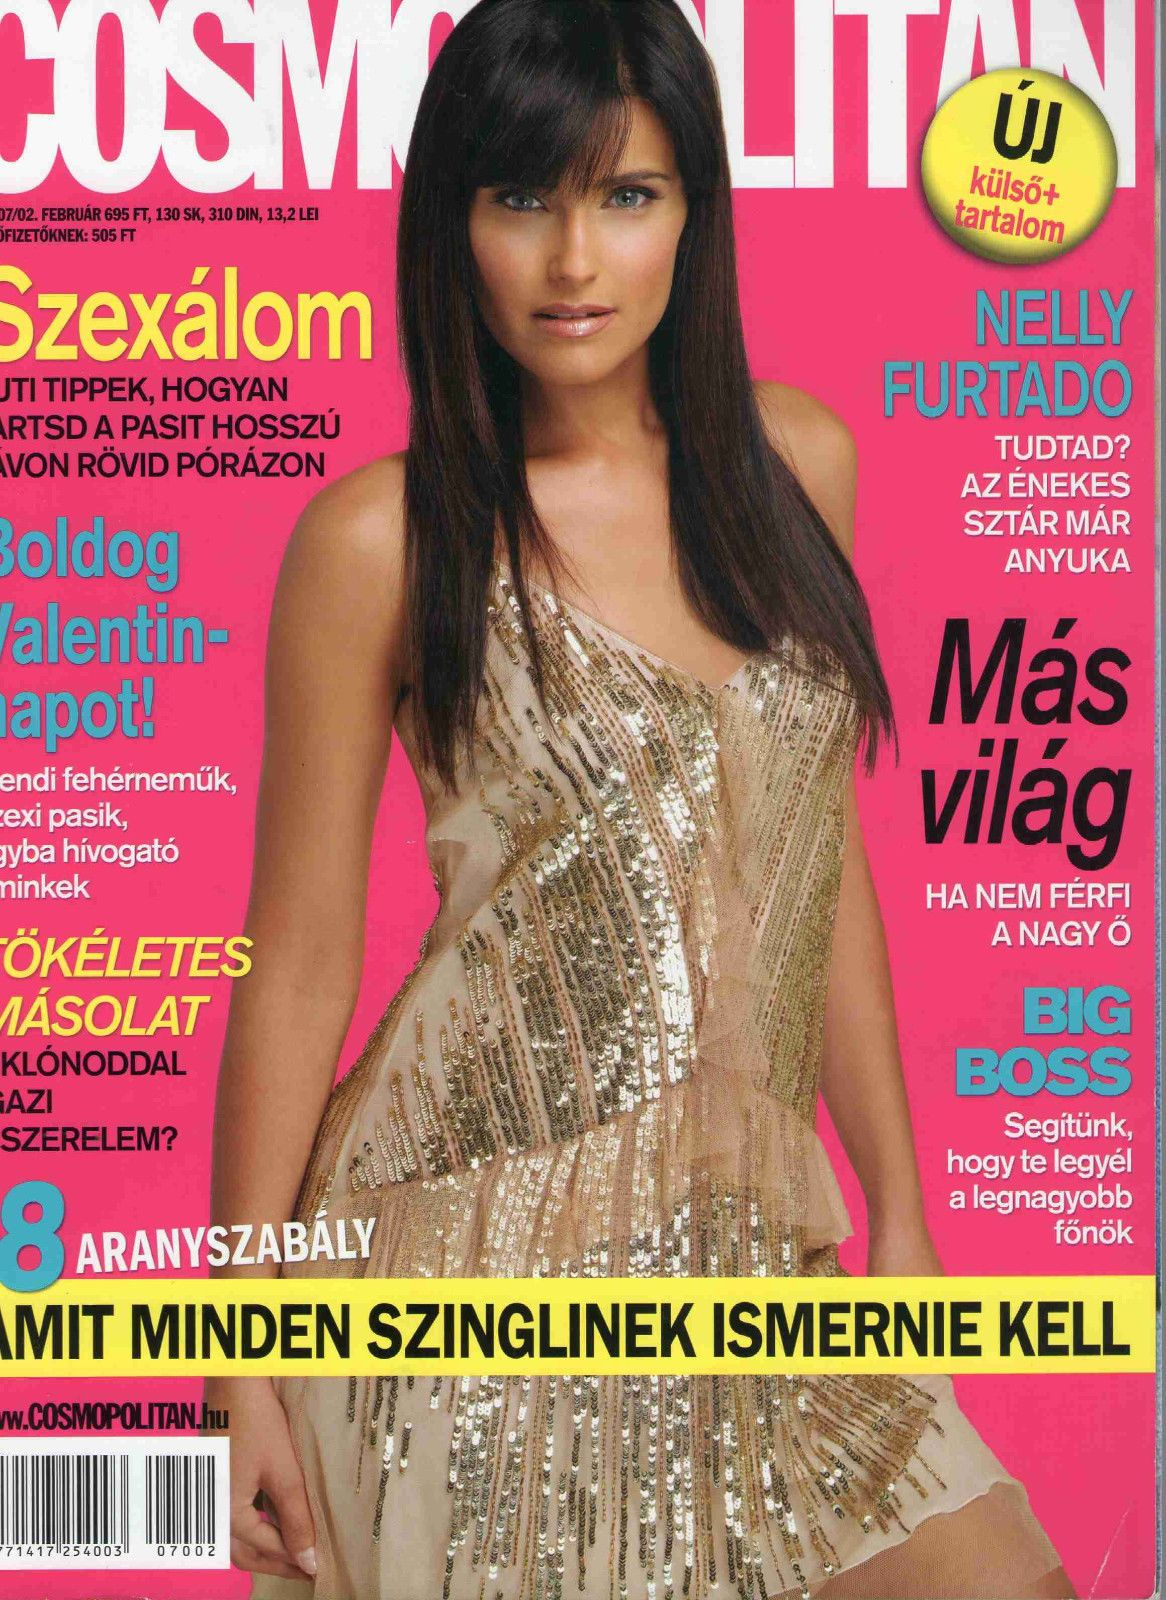 Nelly Furtado: Cosmopolitan